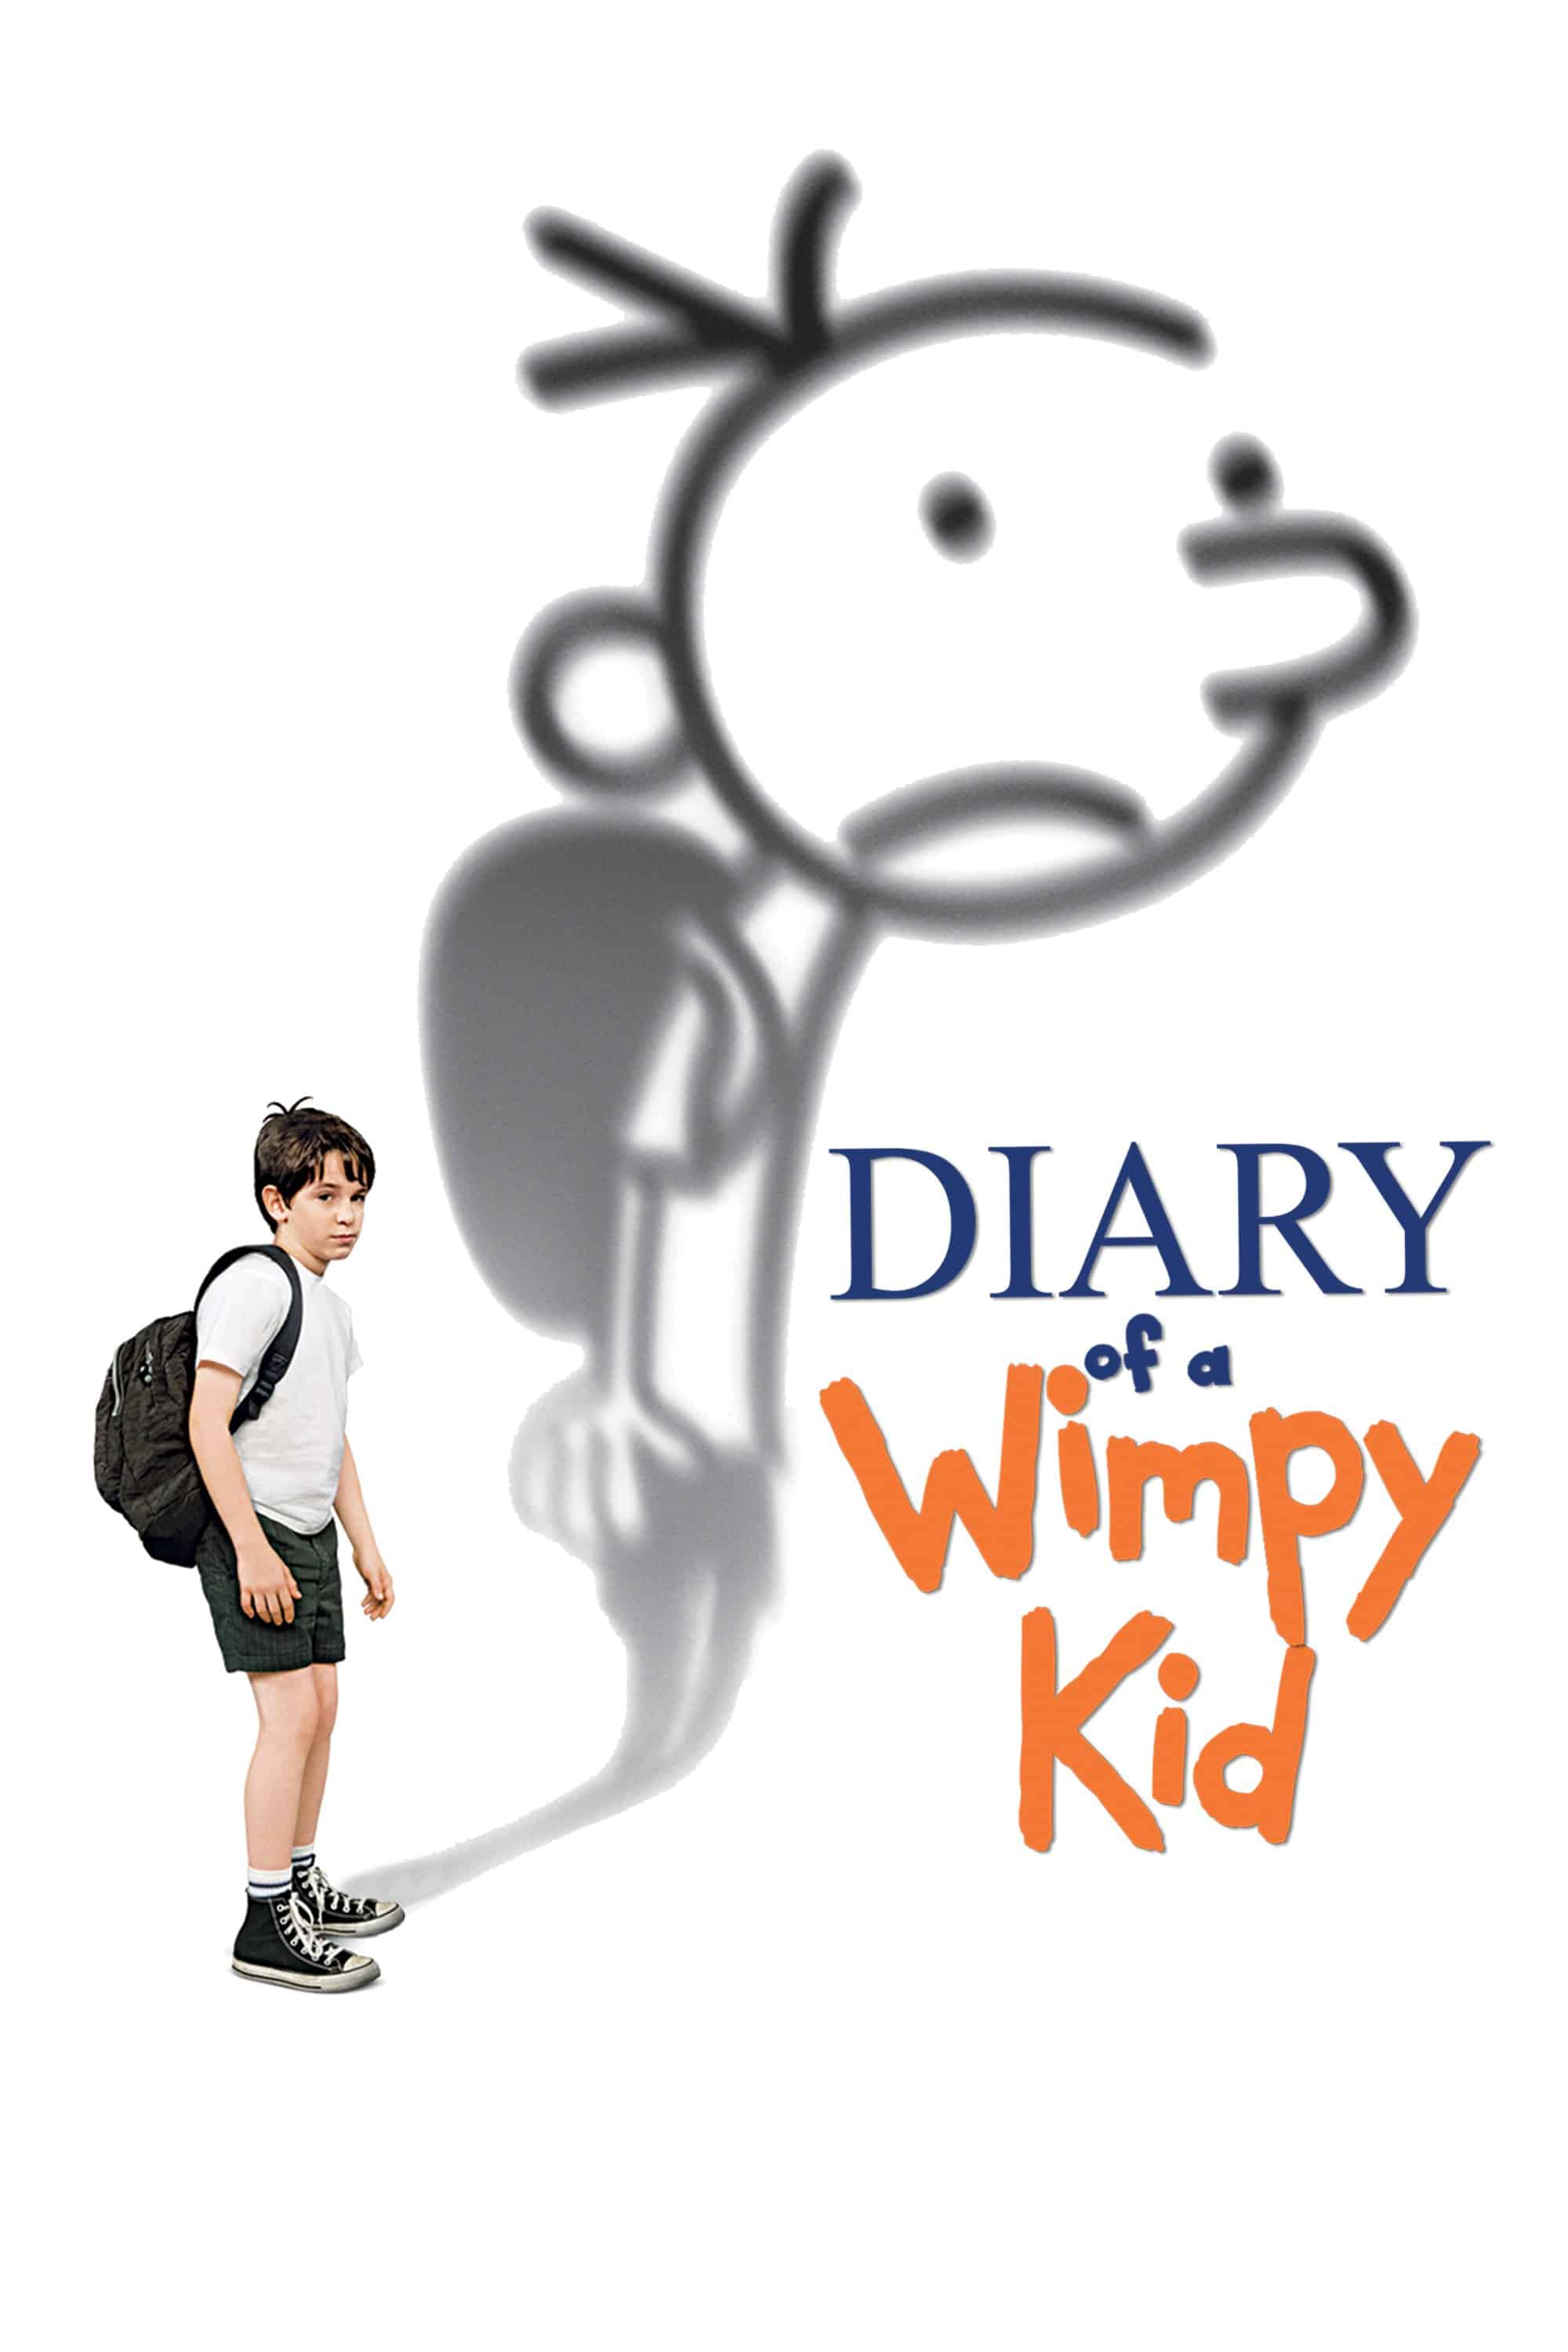 Diary of a Wimpy Kid, 2010